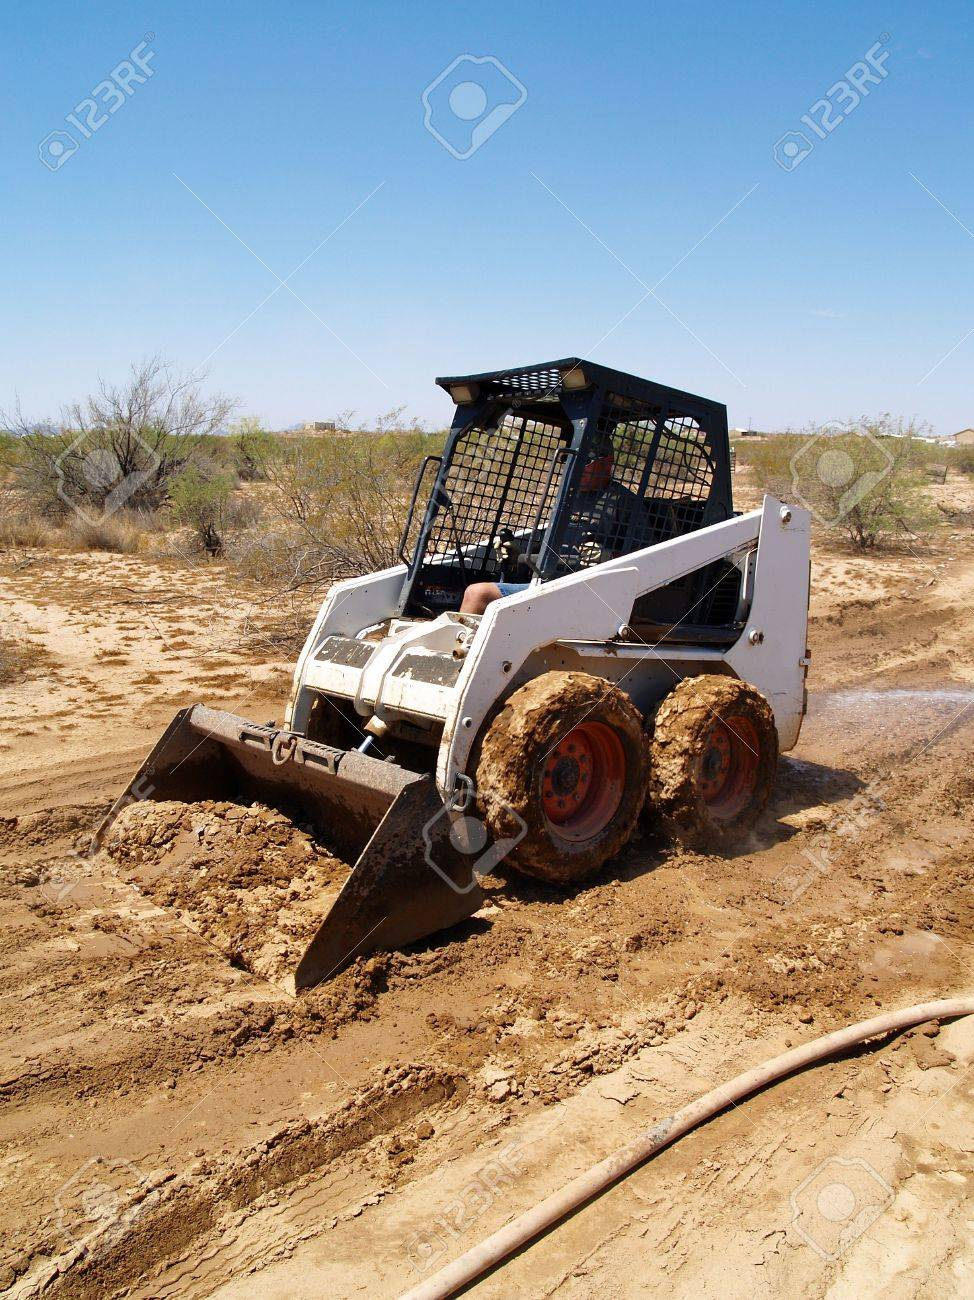 Construction worker driving a skid steer loader at a desert construction site. Vertically framed shot. Stock Photo - 3418500